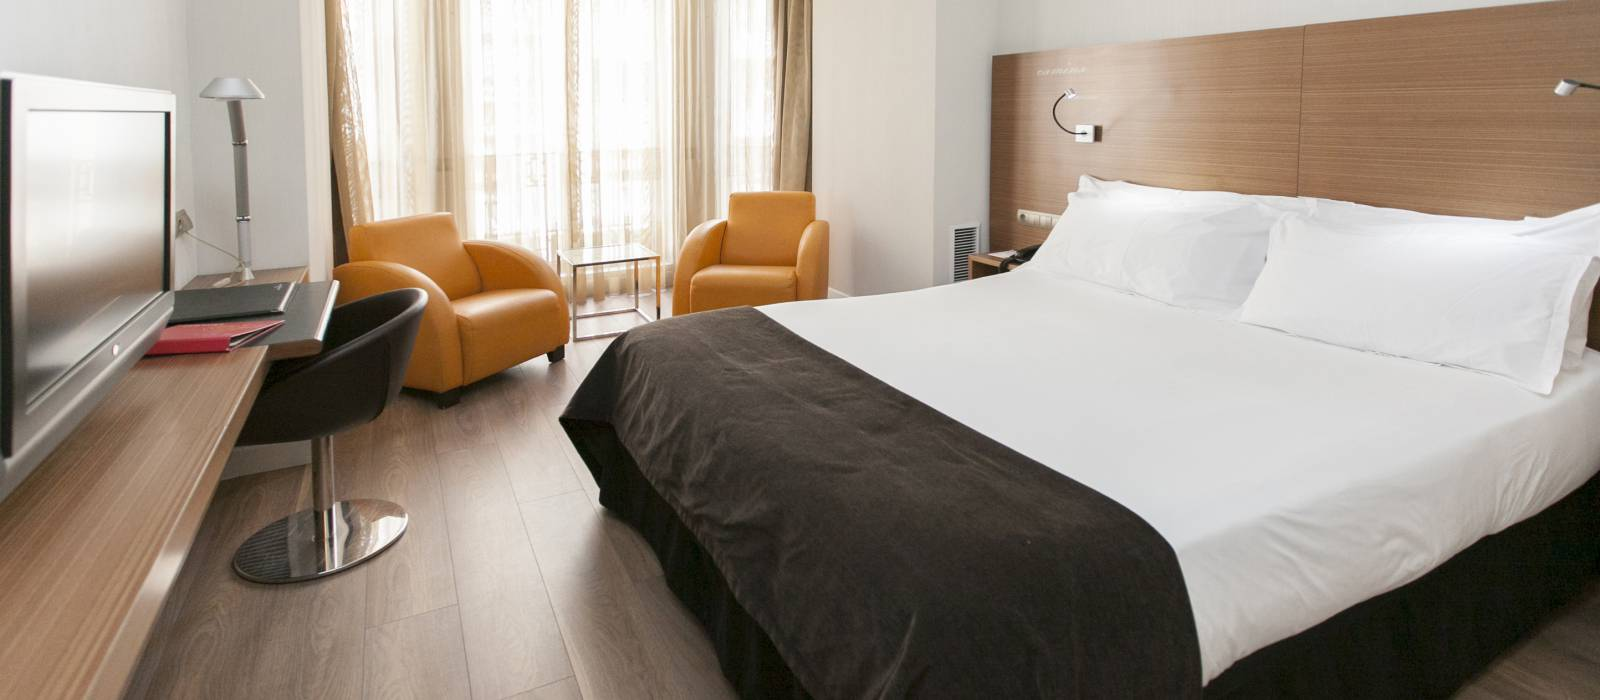 Book early and save 10%! - Vincci Zaragoza Zentro